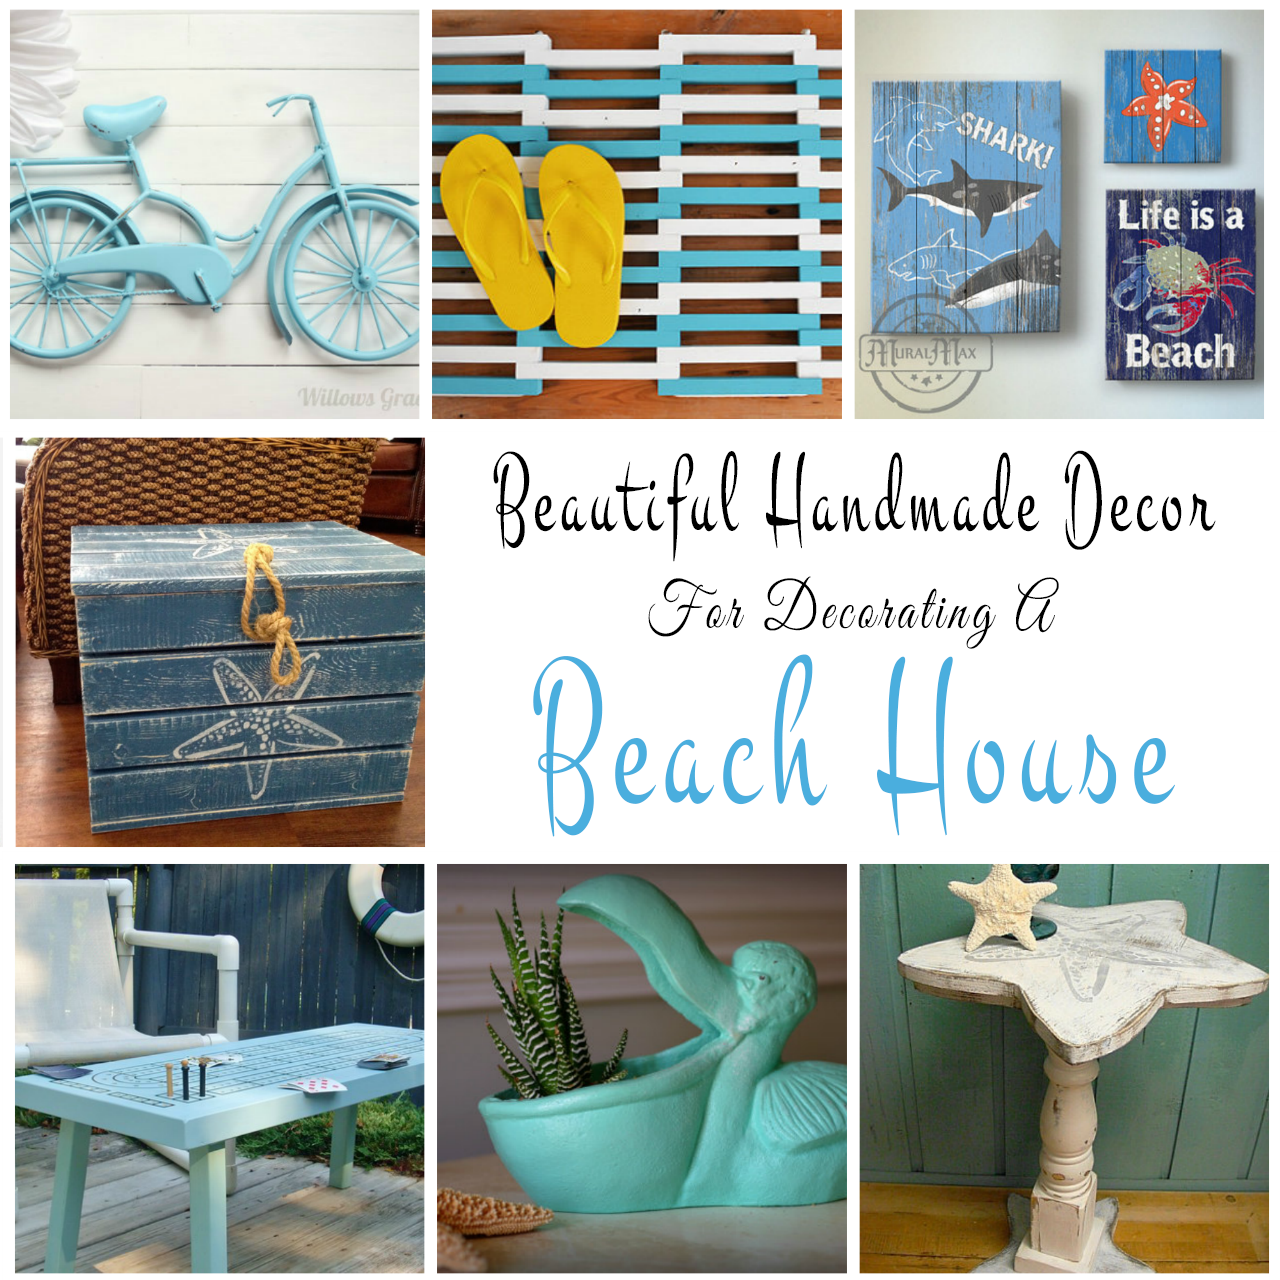 Handmade decor ideas for decorating a beach house for Beach house themed decorating ideas